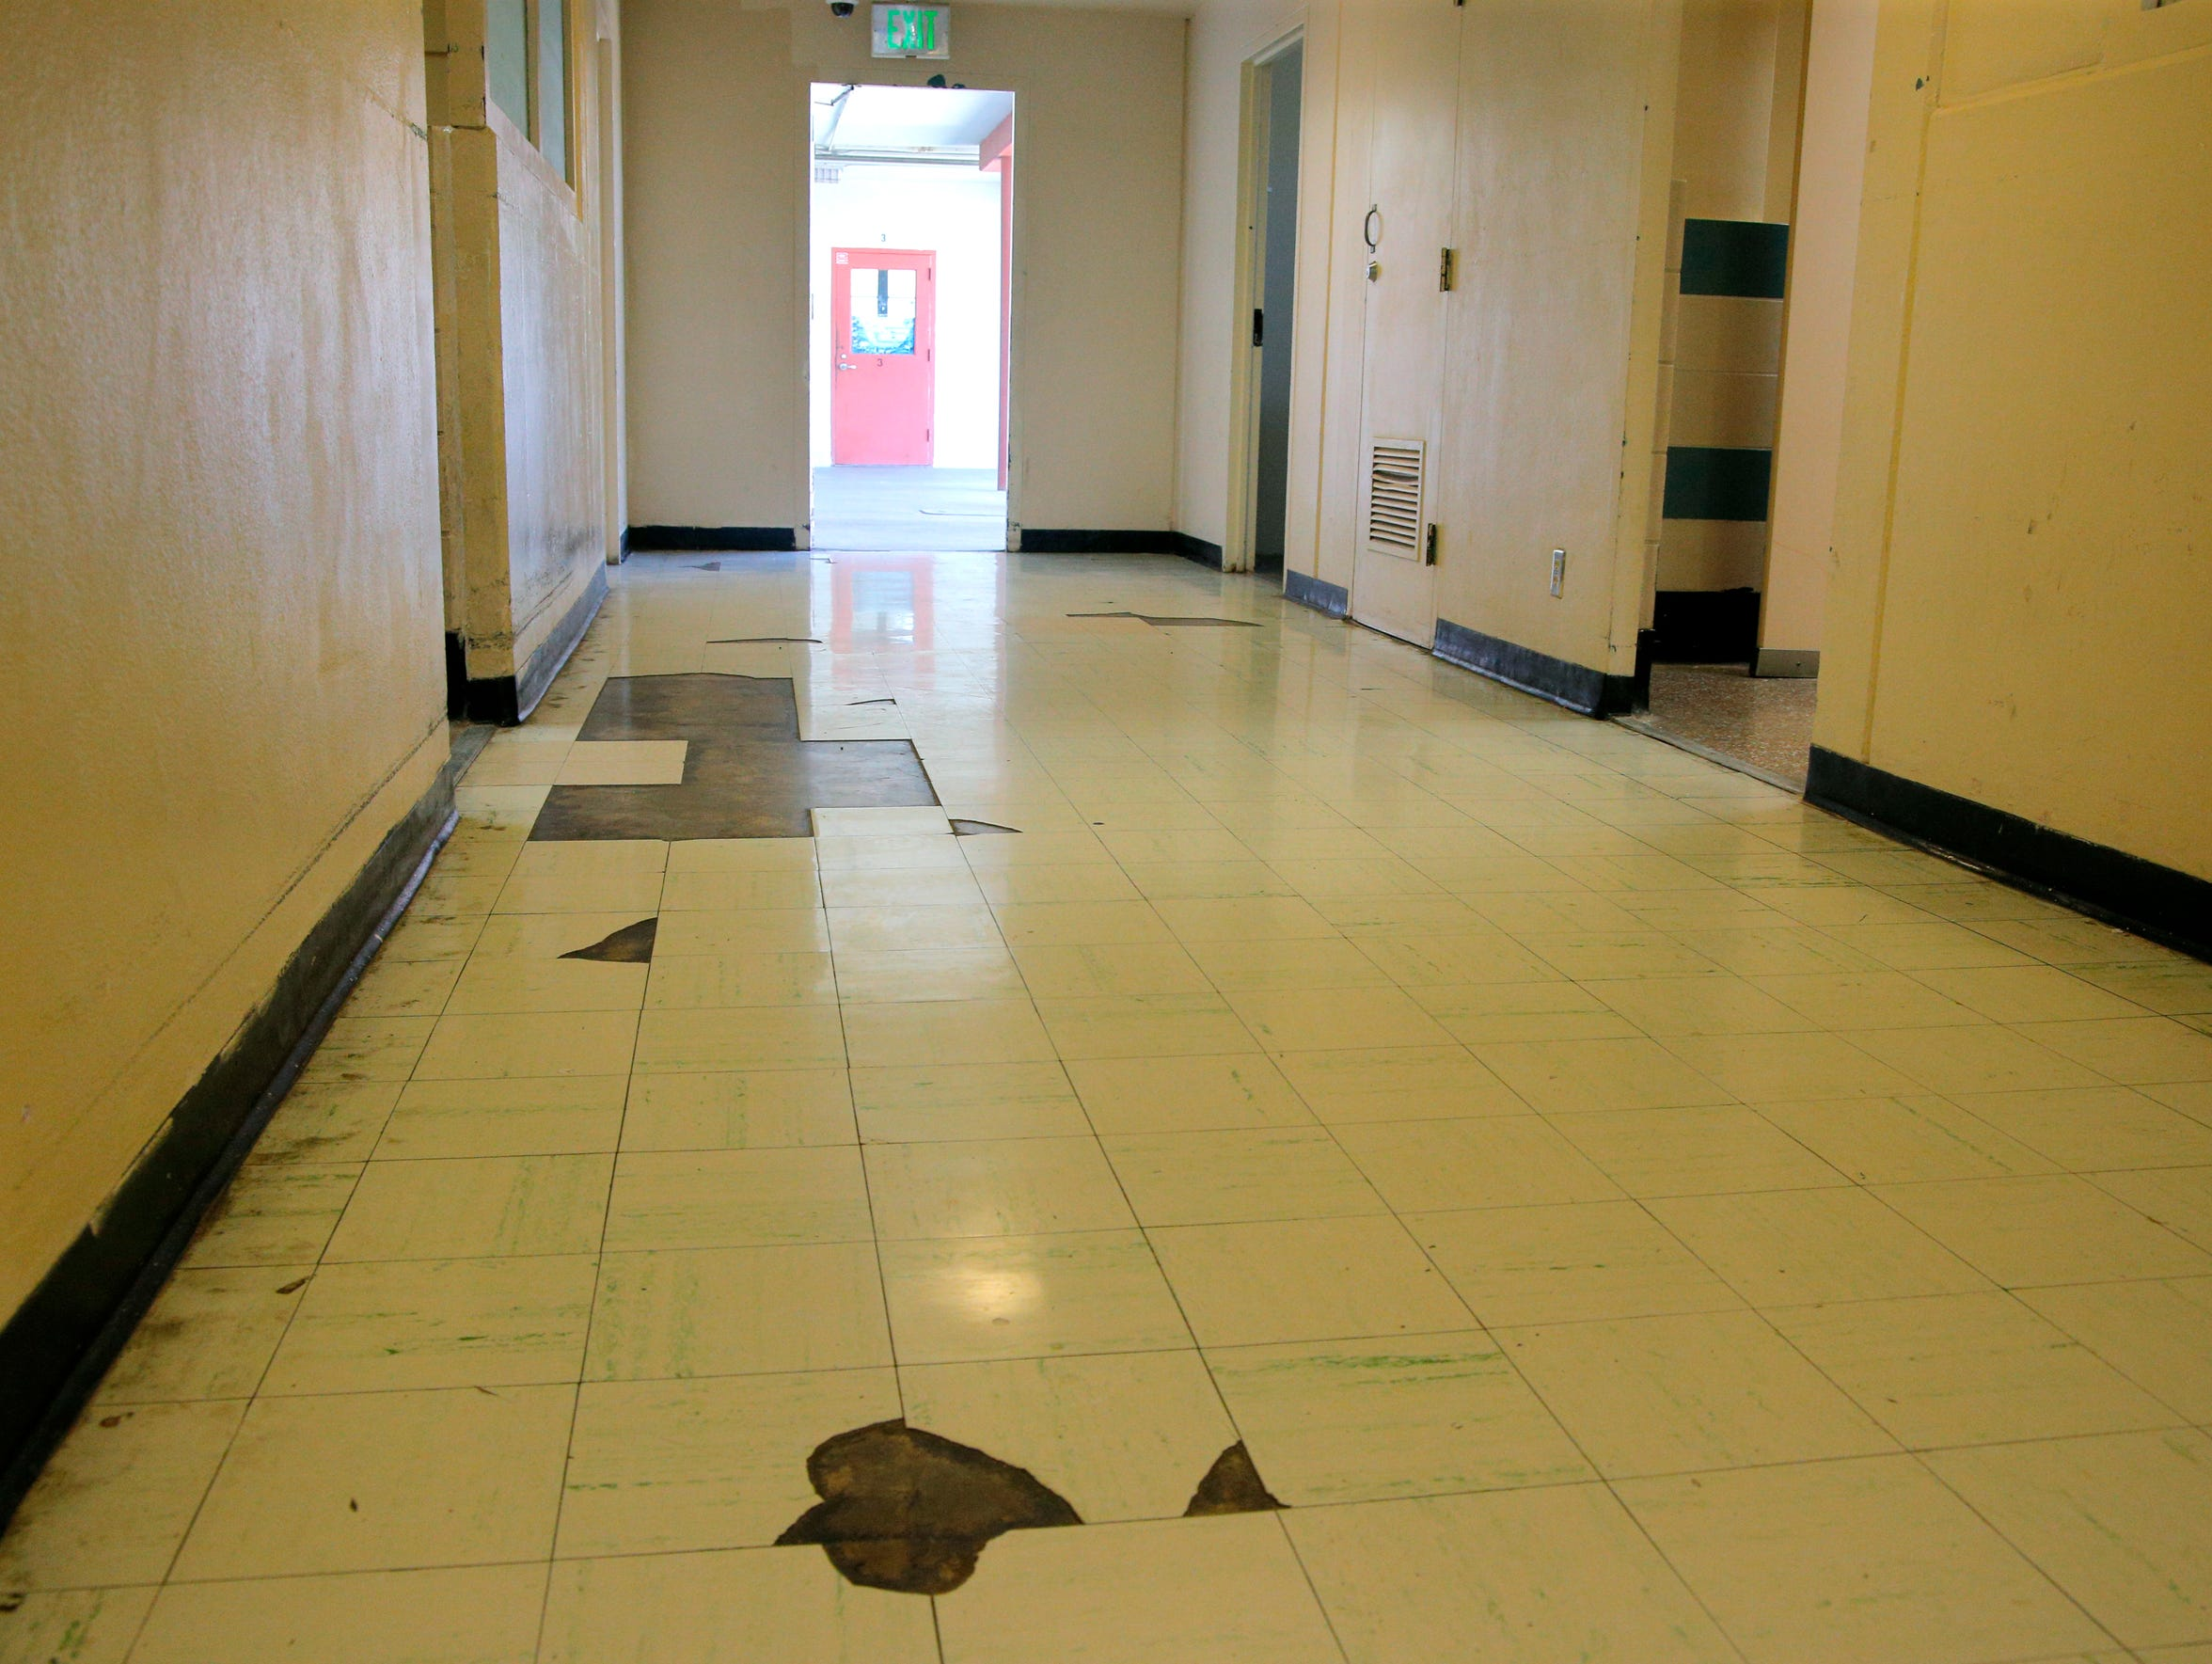 The existing juvenile hall has missing and broken tiles,